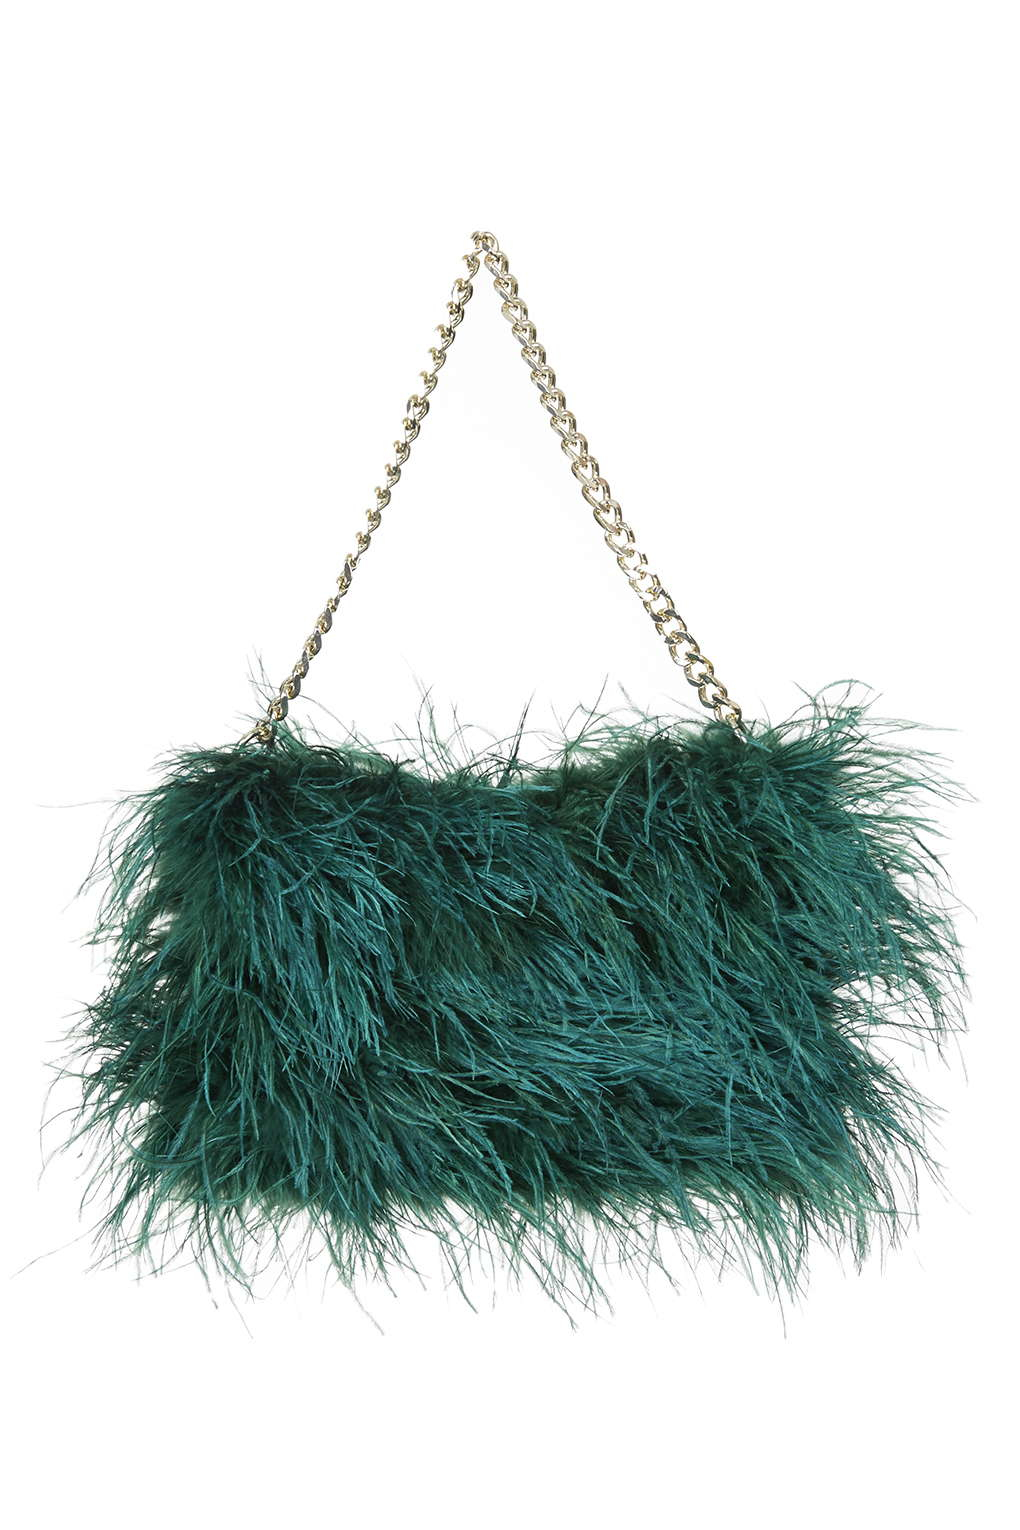 TOPSHOP Premium Feather Shoulder Bag in Green - Lyst 2d1ac6895fa7d